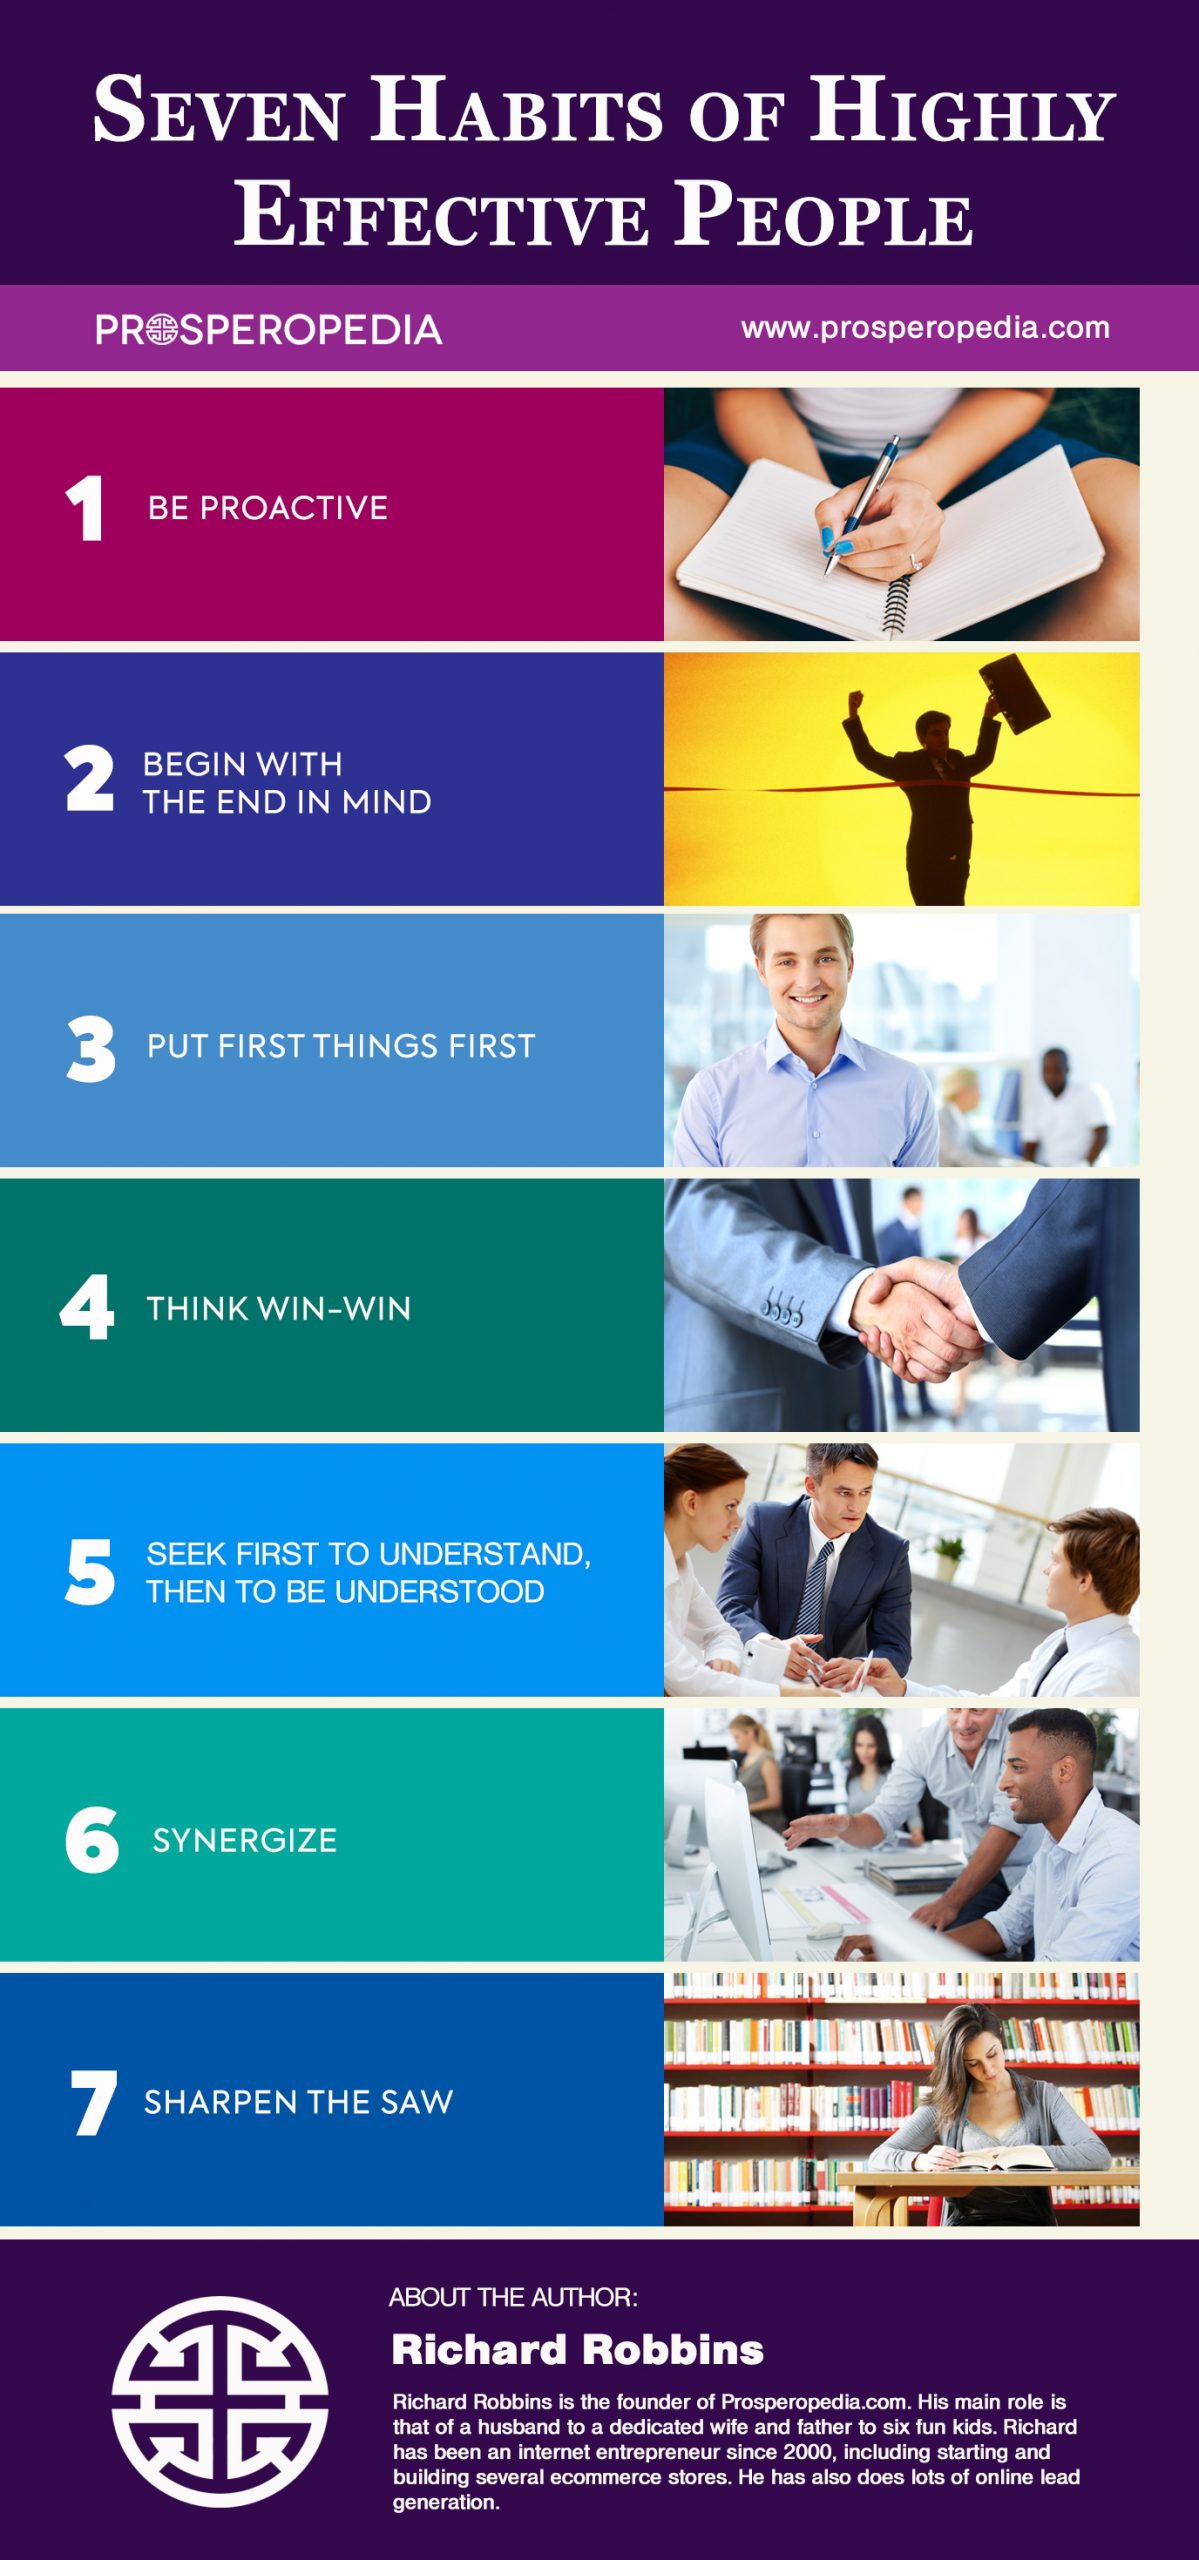 Seven Habits of Highly Effective People Infographic